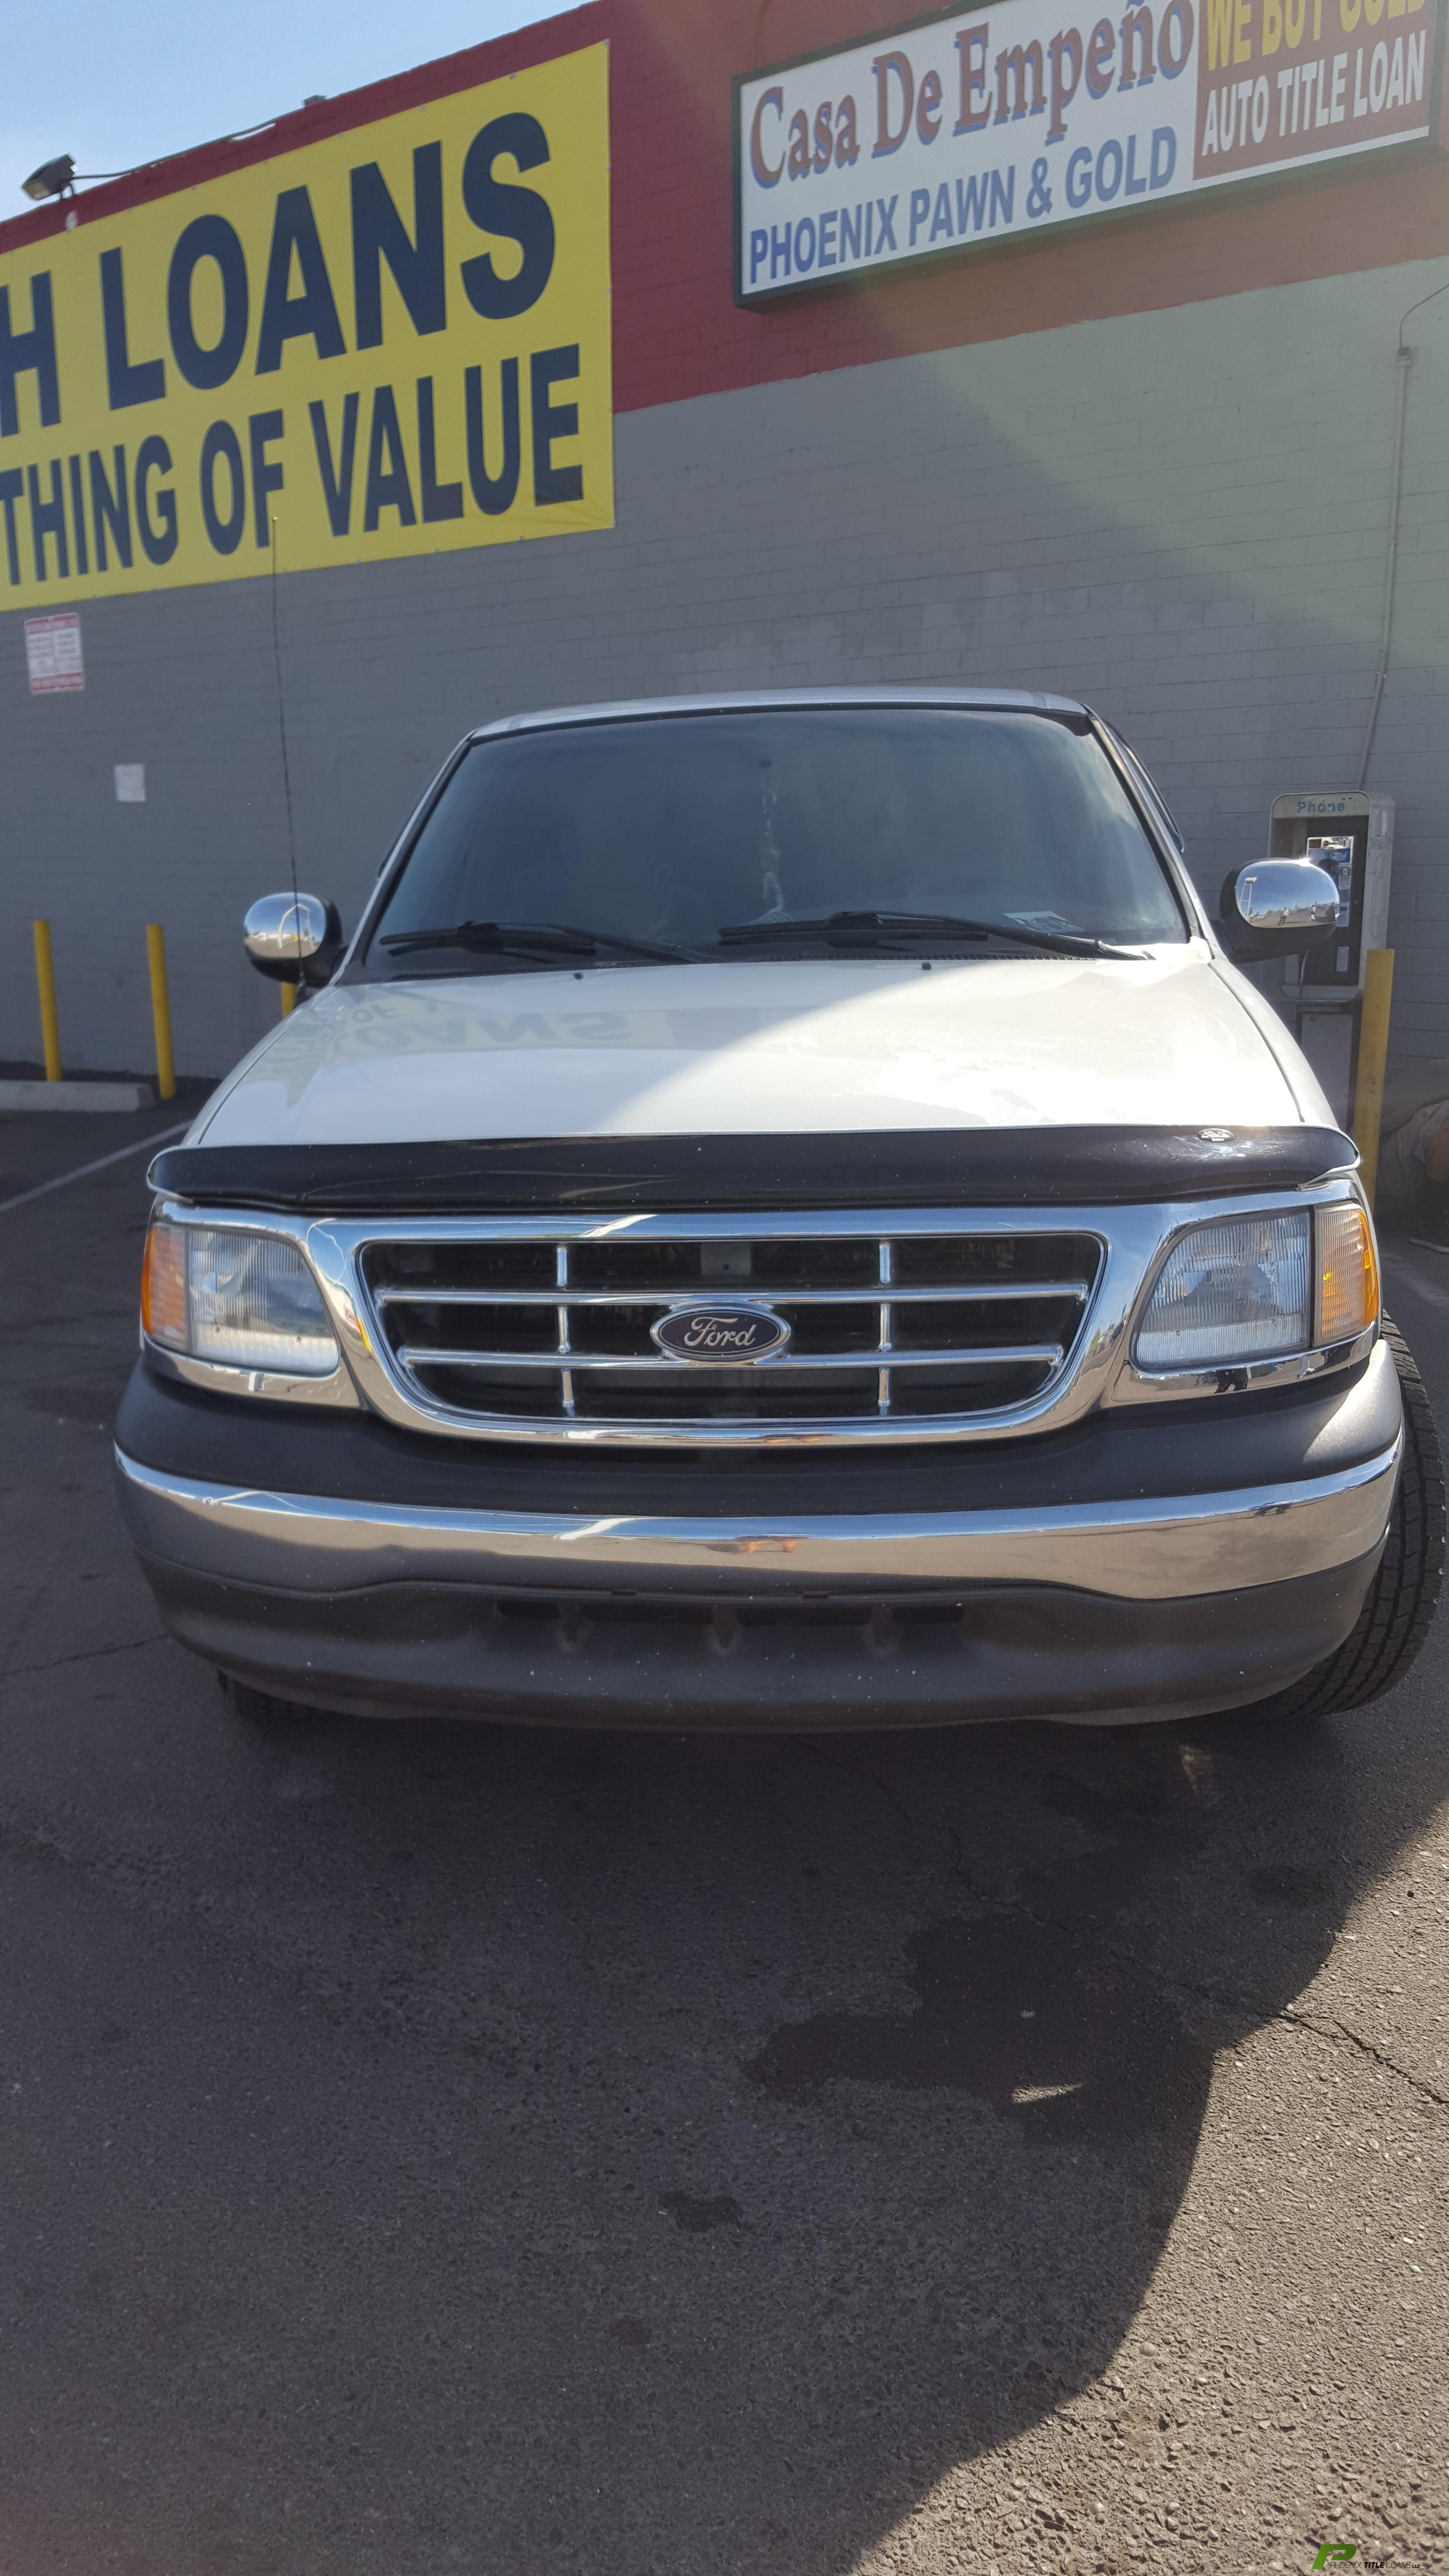 2002 Ford F150 Truck Title Loans Approved $600 Dollars Phoenix